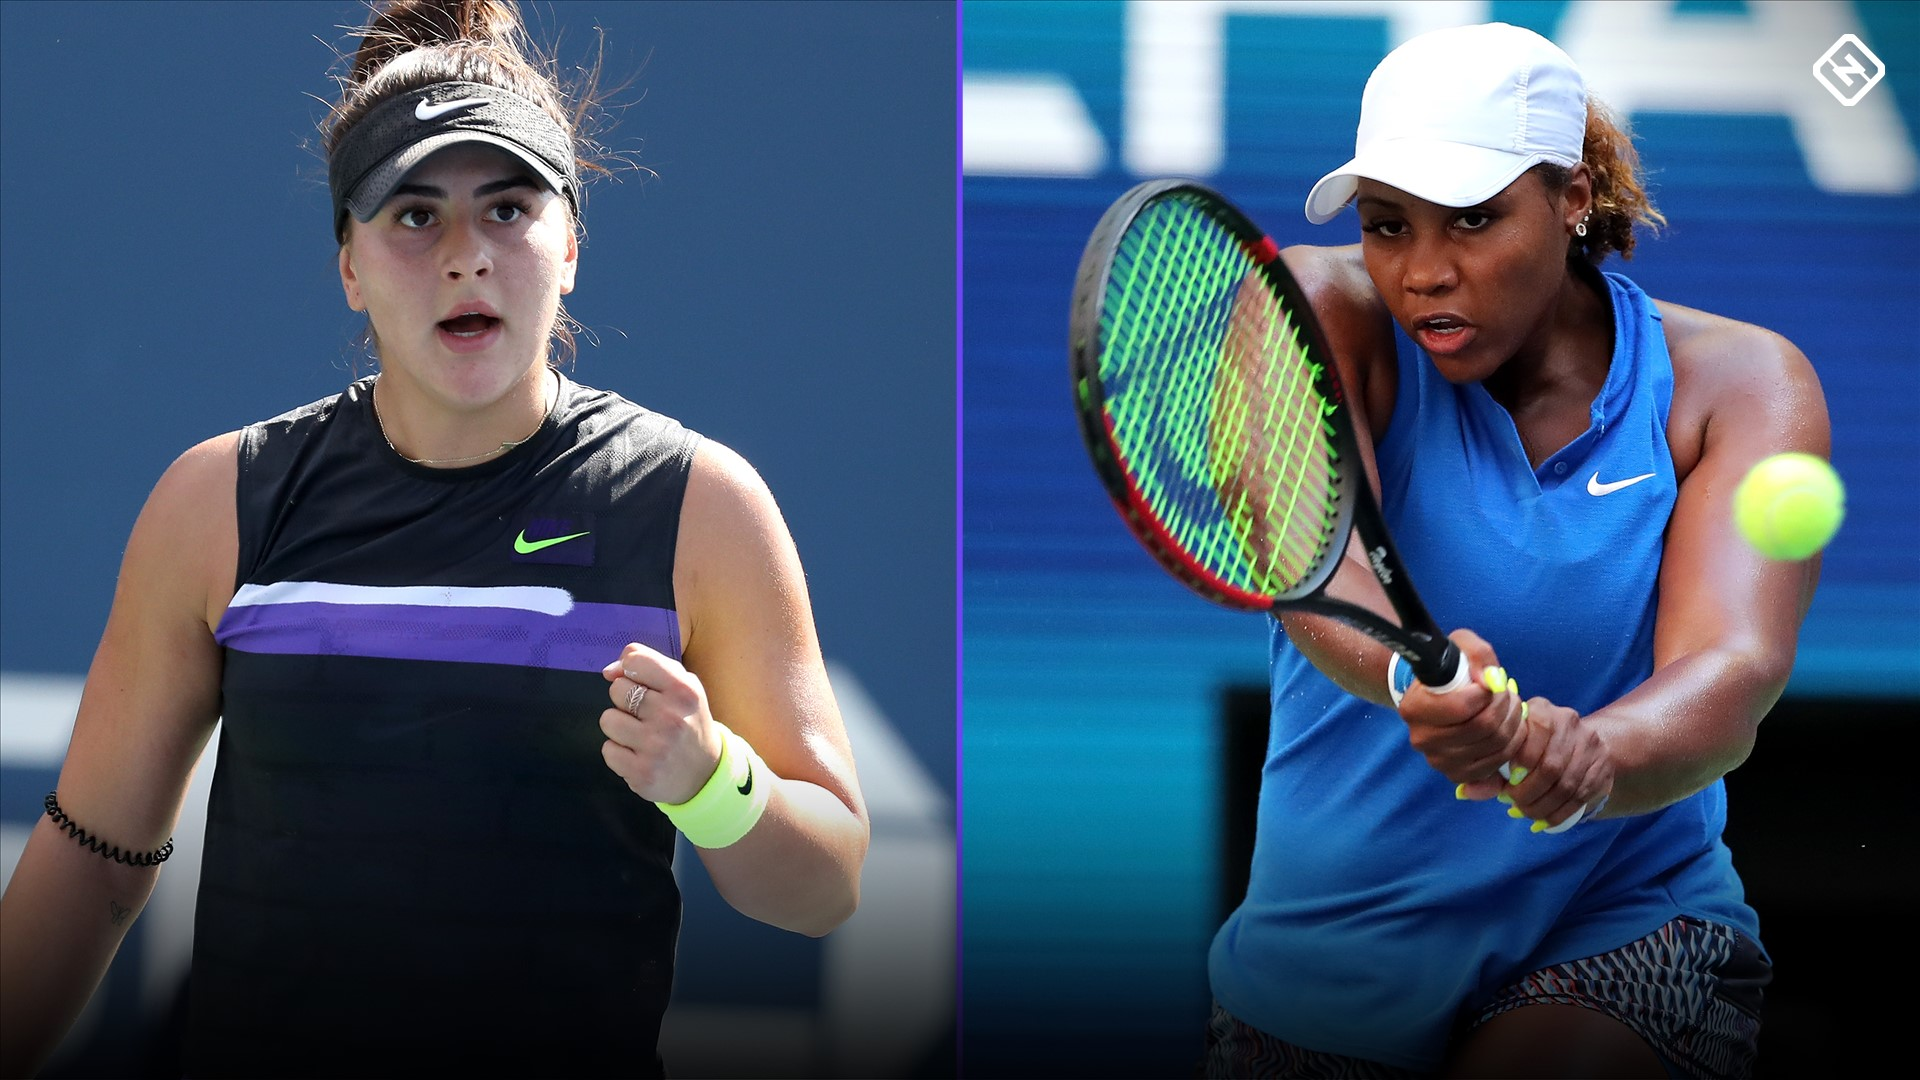 U.S. Open 2019: Bianca Andreescu versus Taylor Townsend — and the serve and volley